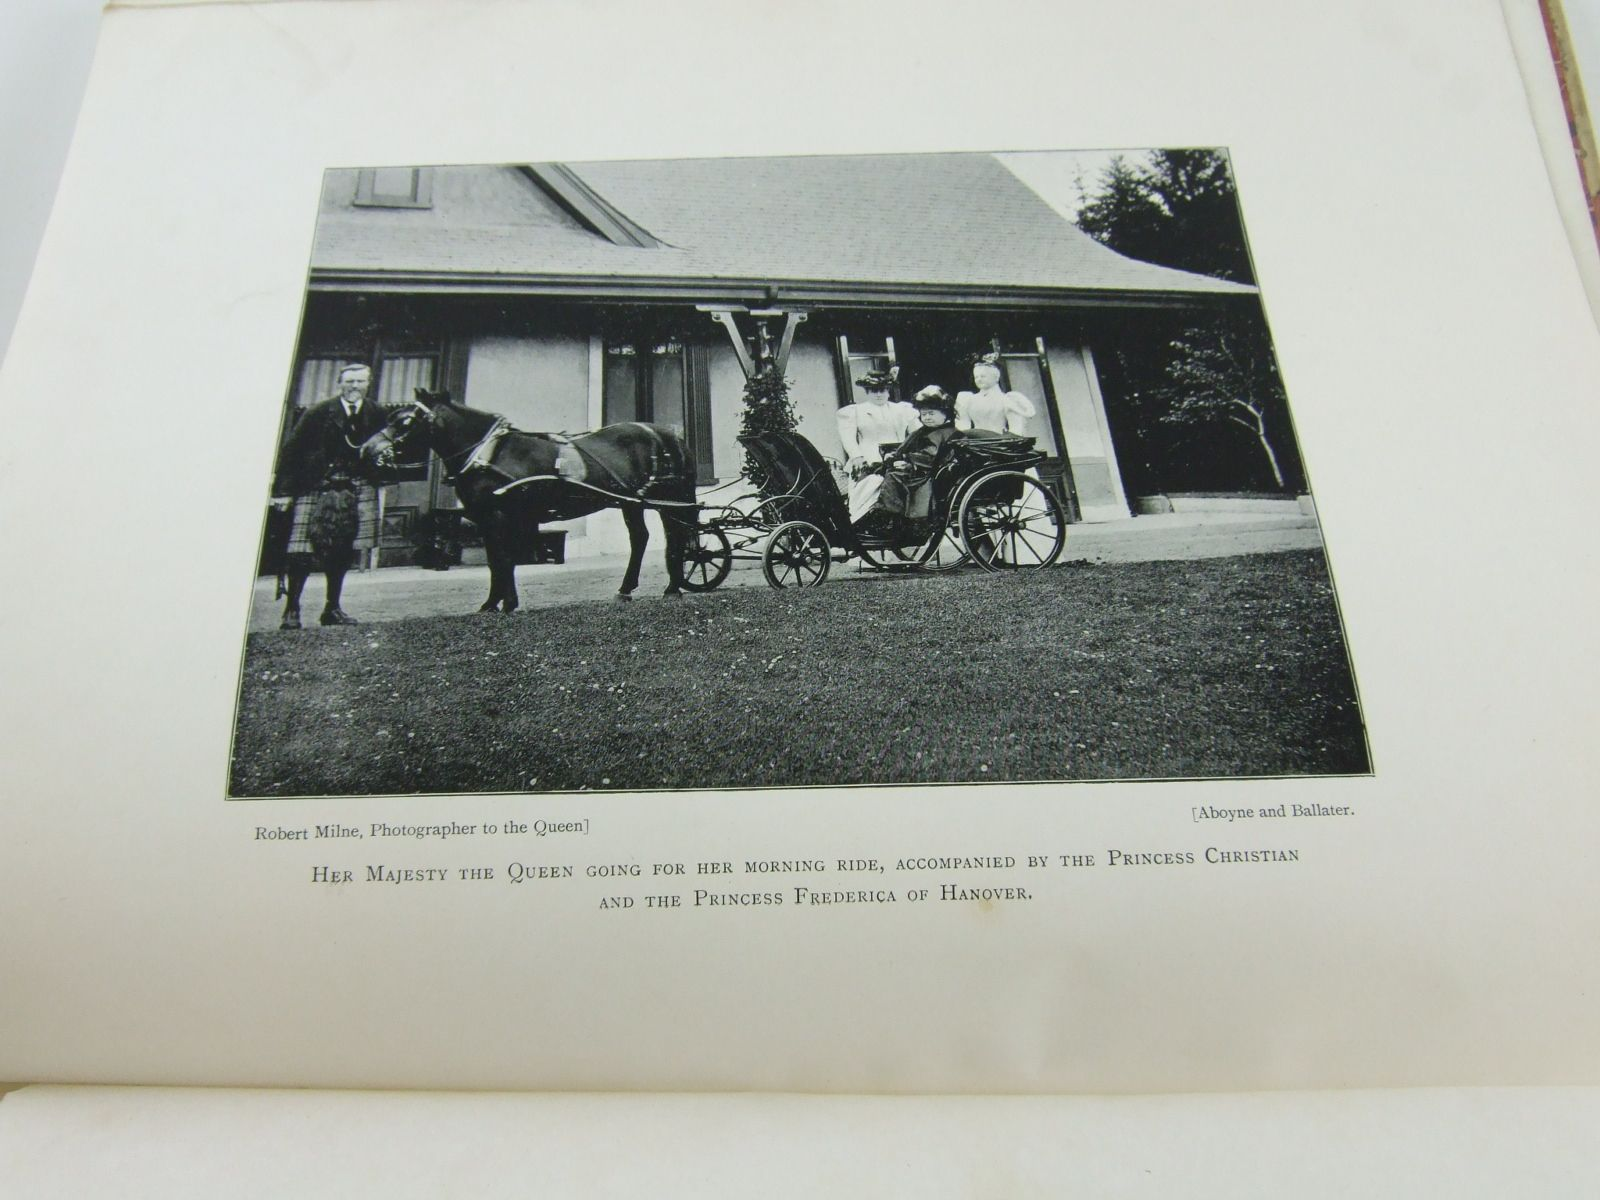 Photo of THE DIAMOND JUBILEE IN CHESHIRE written by Cooke, John H. published by Mackie & Co. Limited (STOCK CODE: 2106651)  for sale by Stella & Rose's Books